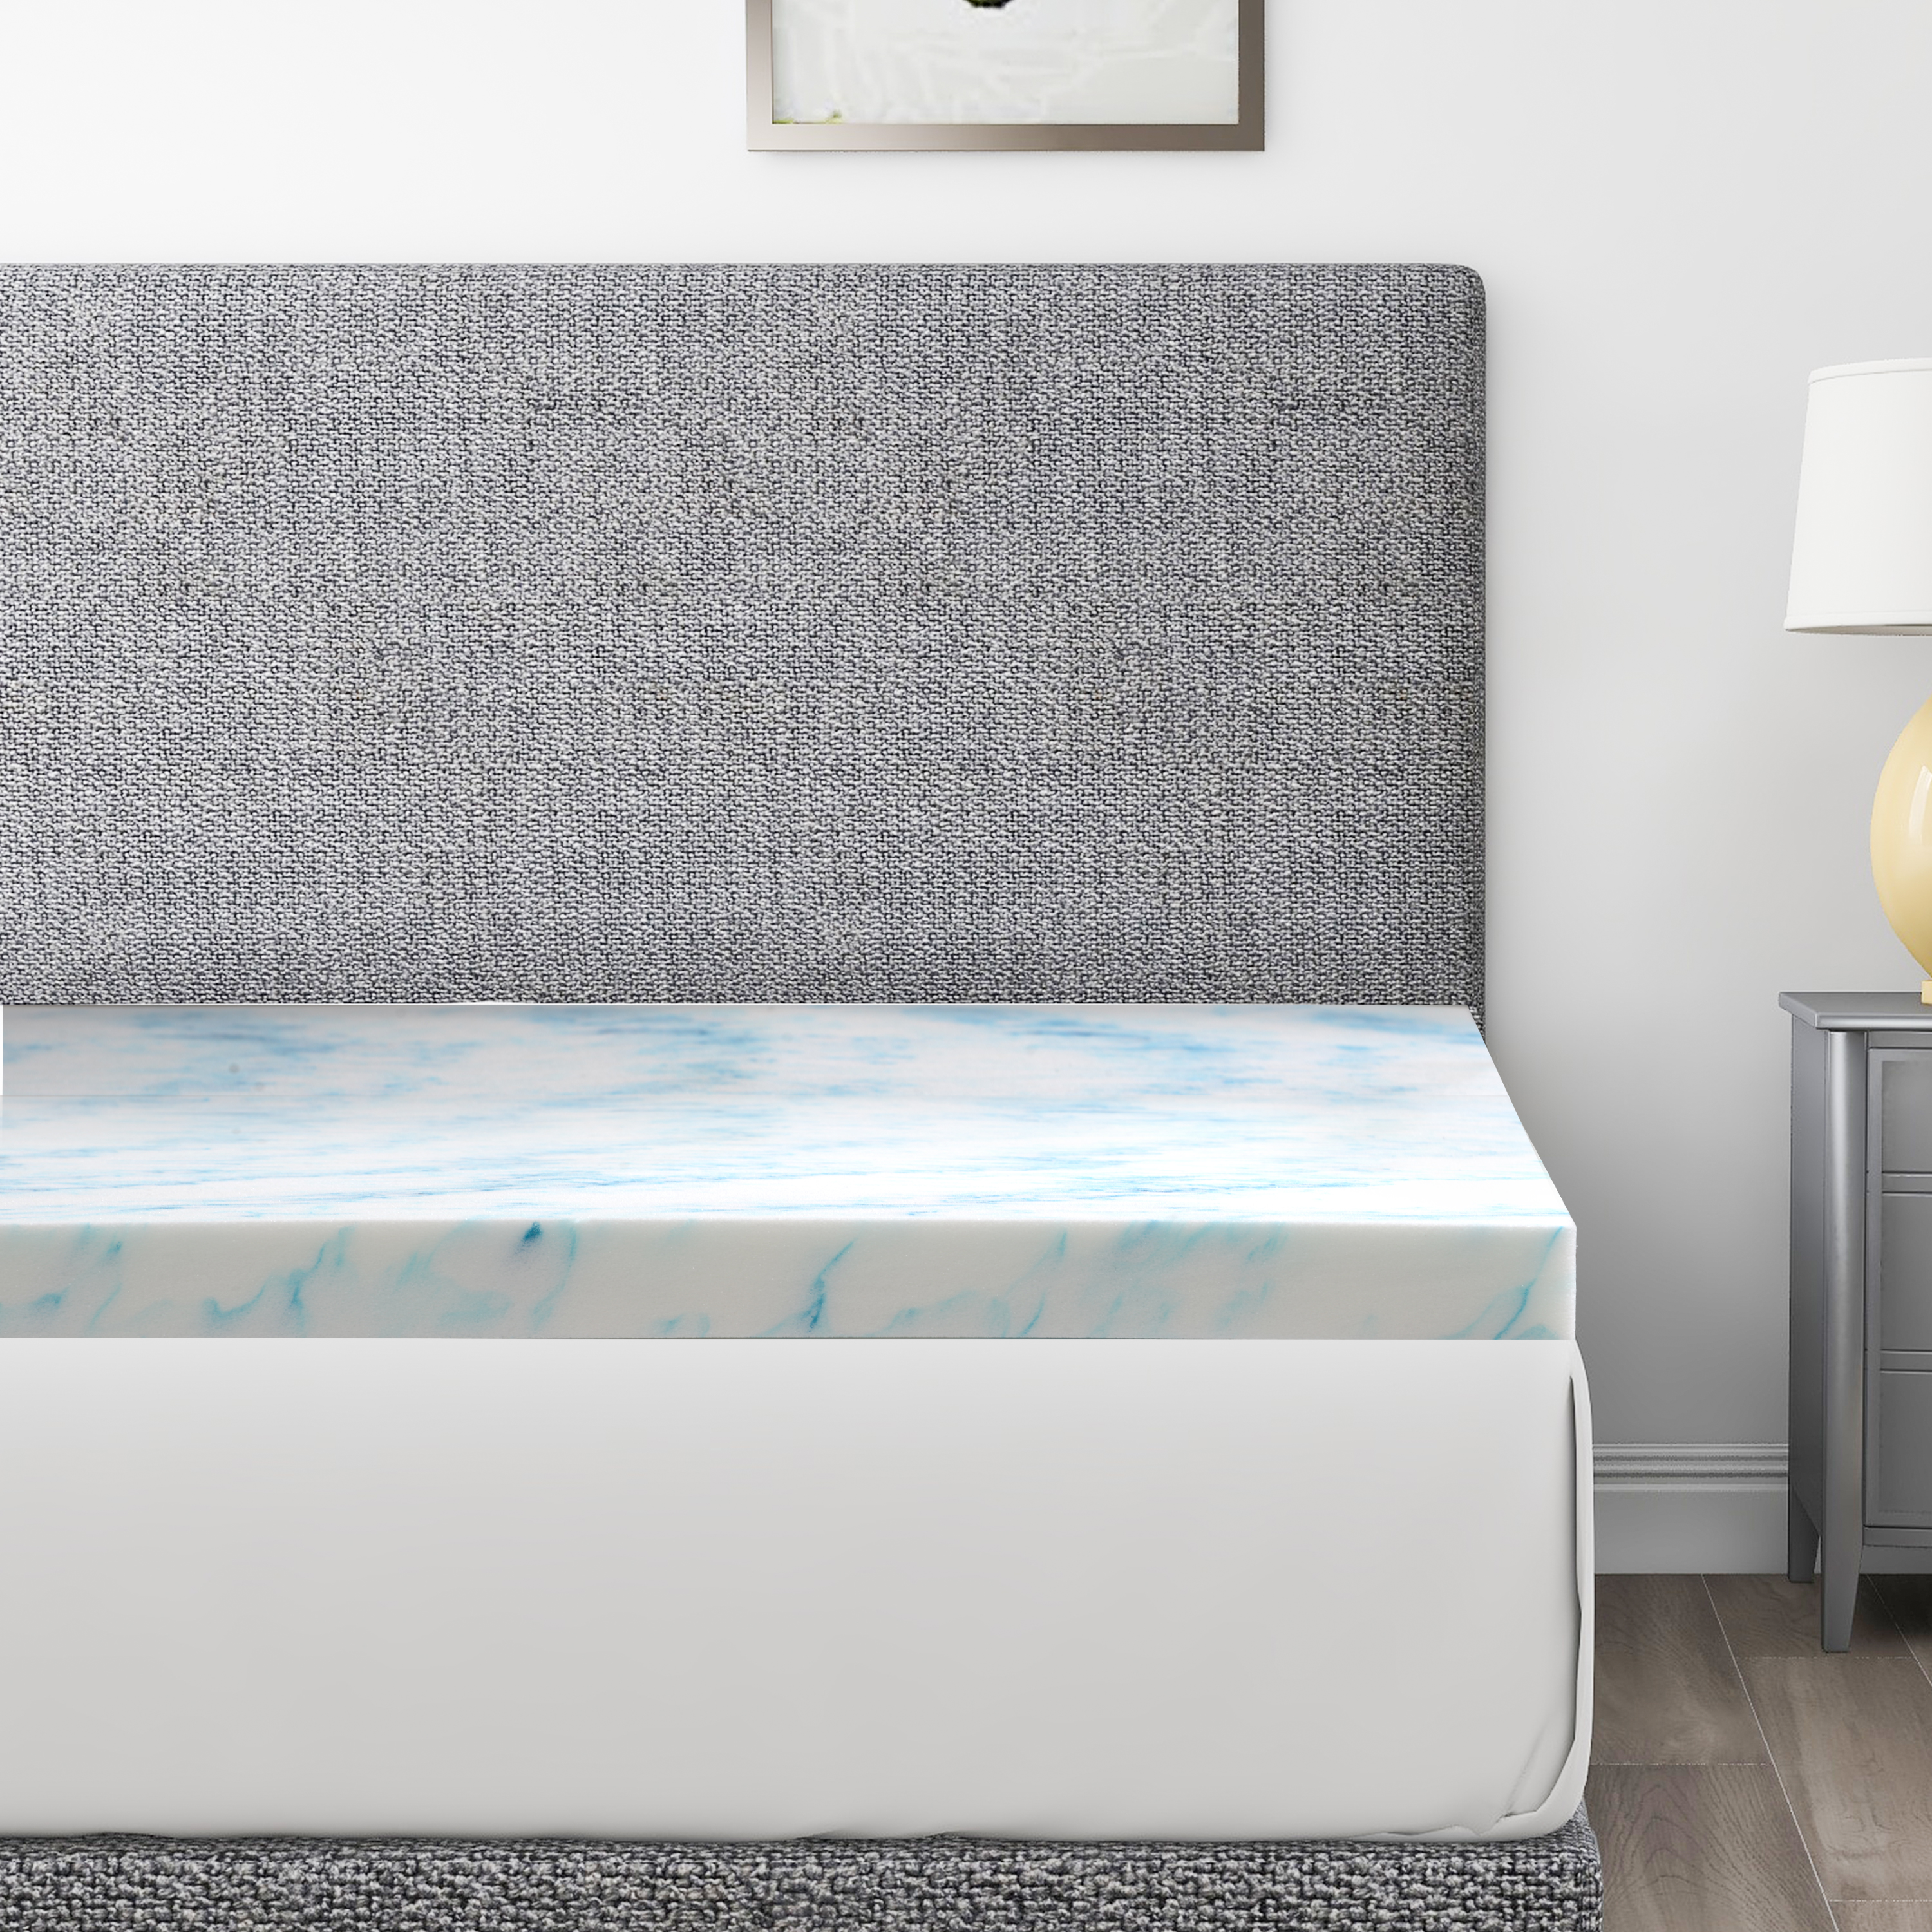 [US Direct] 3 Inch Gel and Aloe Infused Memory Foam Mattress Topper, Queen